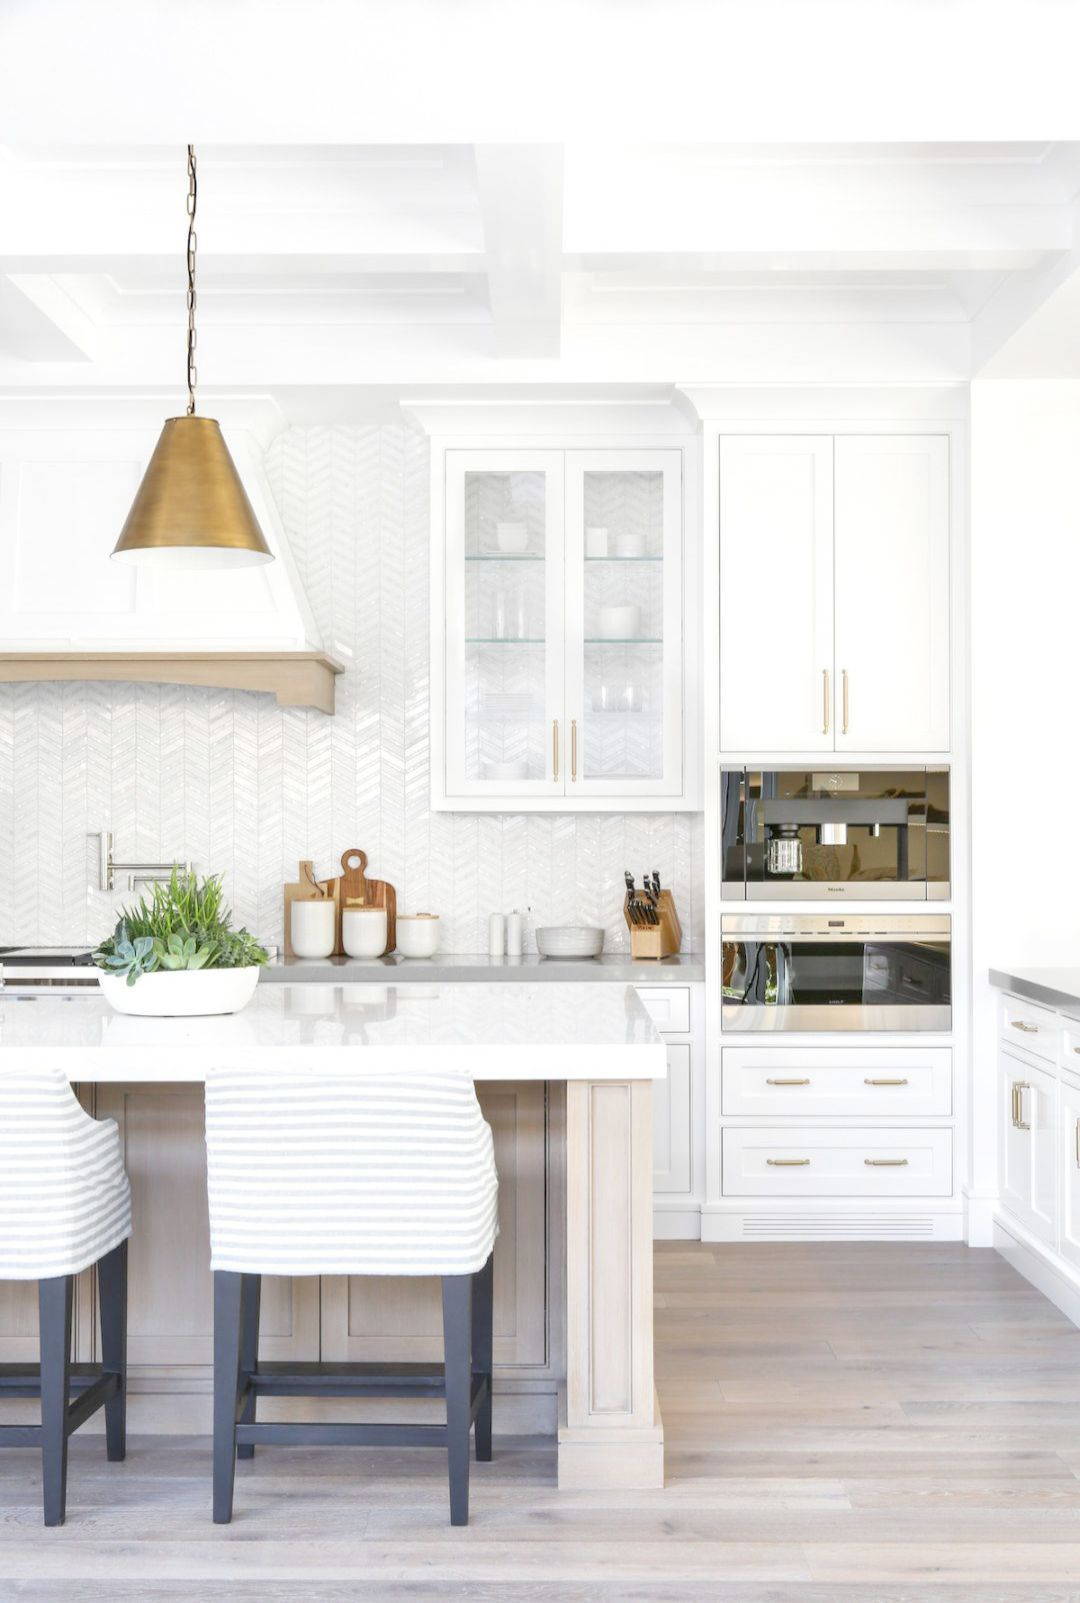 Interior Design Styles For Kitchen Renovation Mortgage Northern